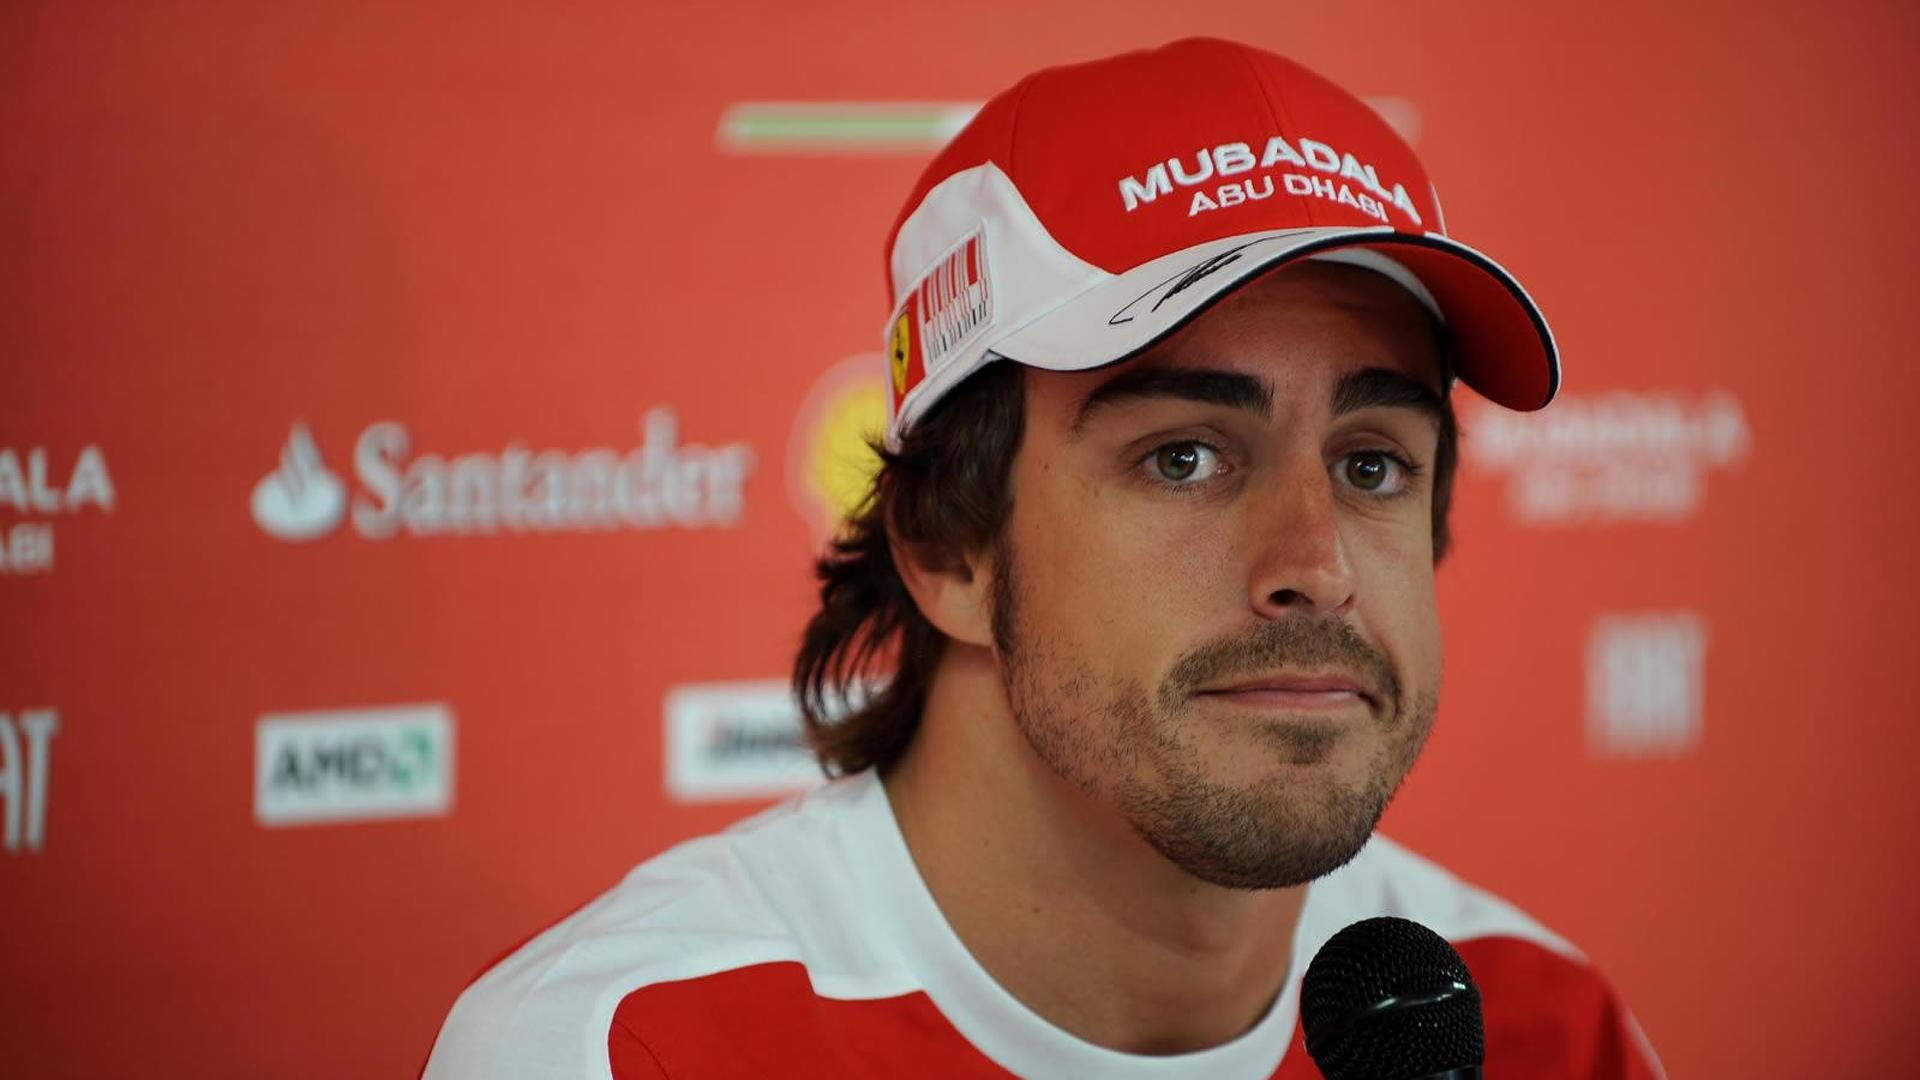 Alonso not expecting to win title in Brazil